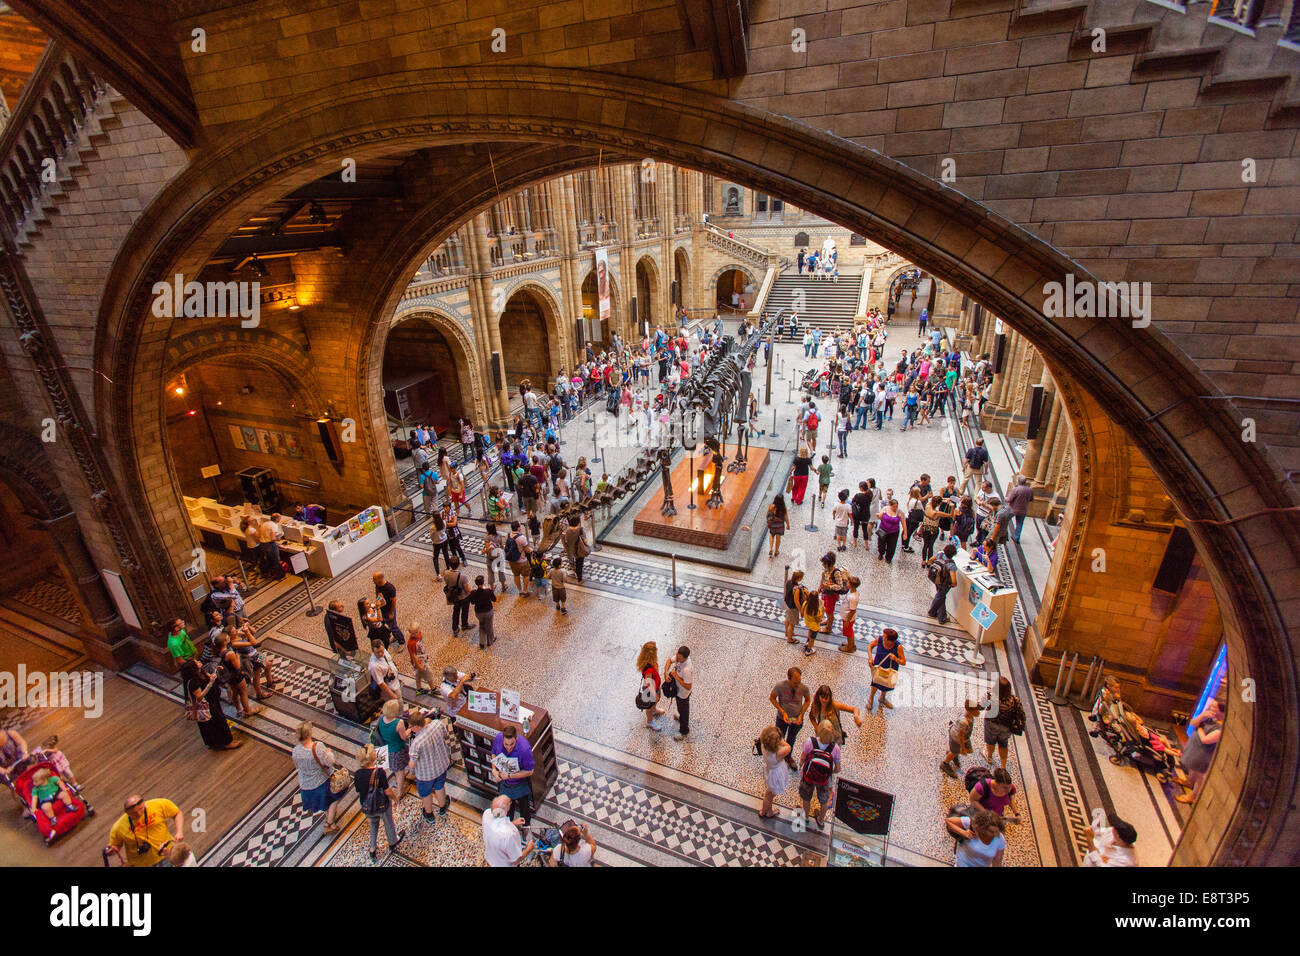 The Central Hall in Natural History Museum in London. United Kingdom. - Stock Image